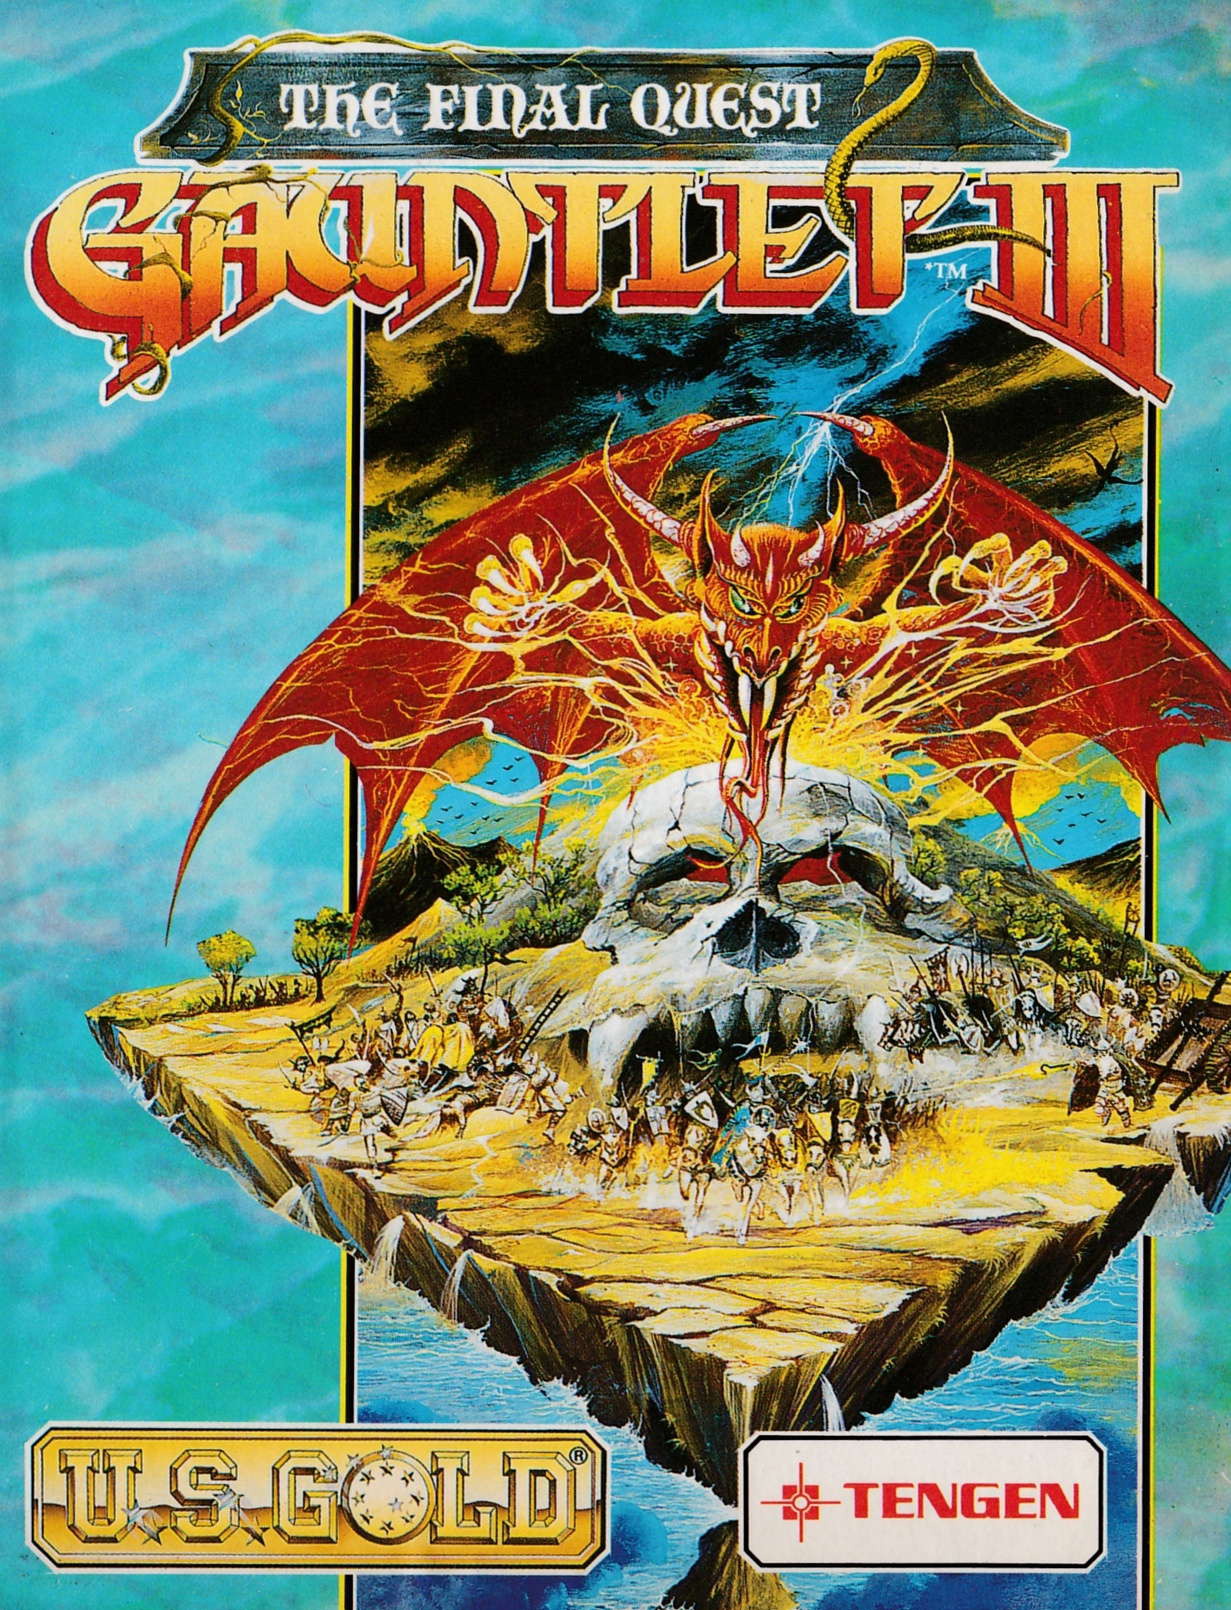 cover of the Amstrad CPC game Gauntlet III - The Final Quest  by GameBase CPC